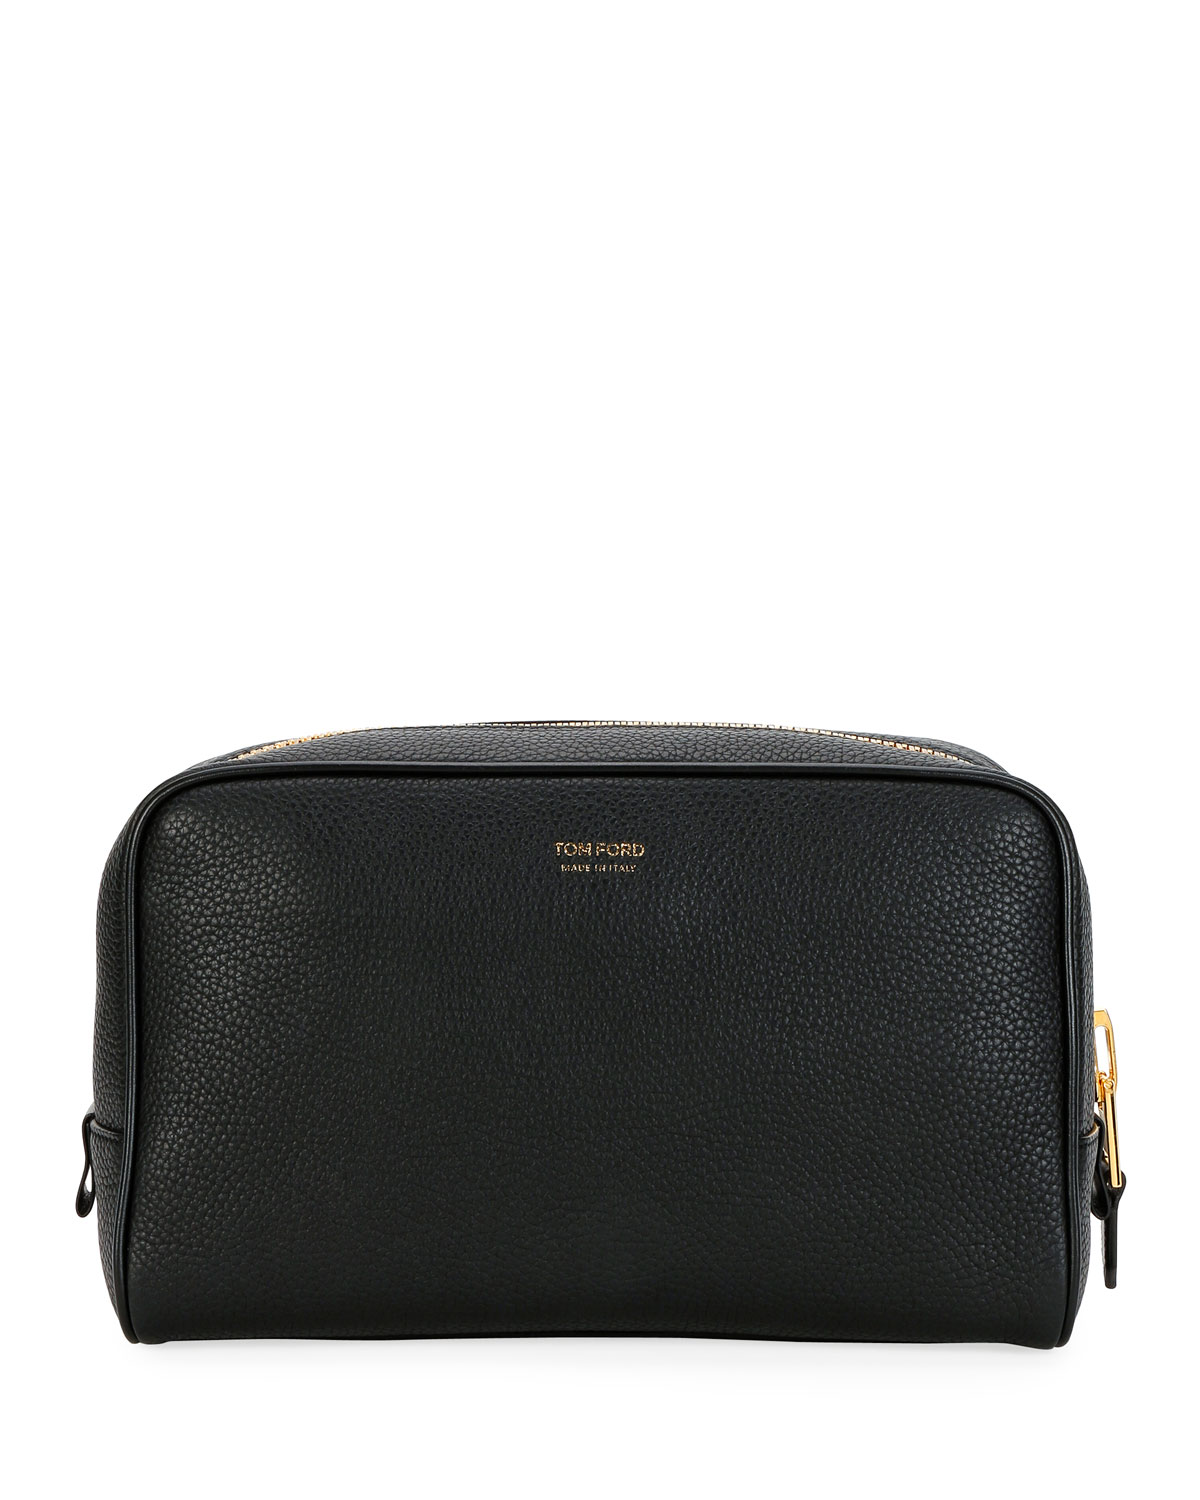 Tom Ford Travel Men's Lifestyle Leather Toiletry Travel Case